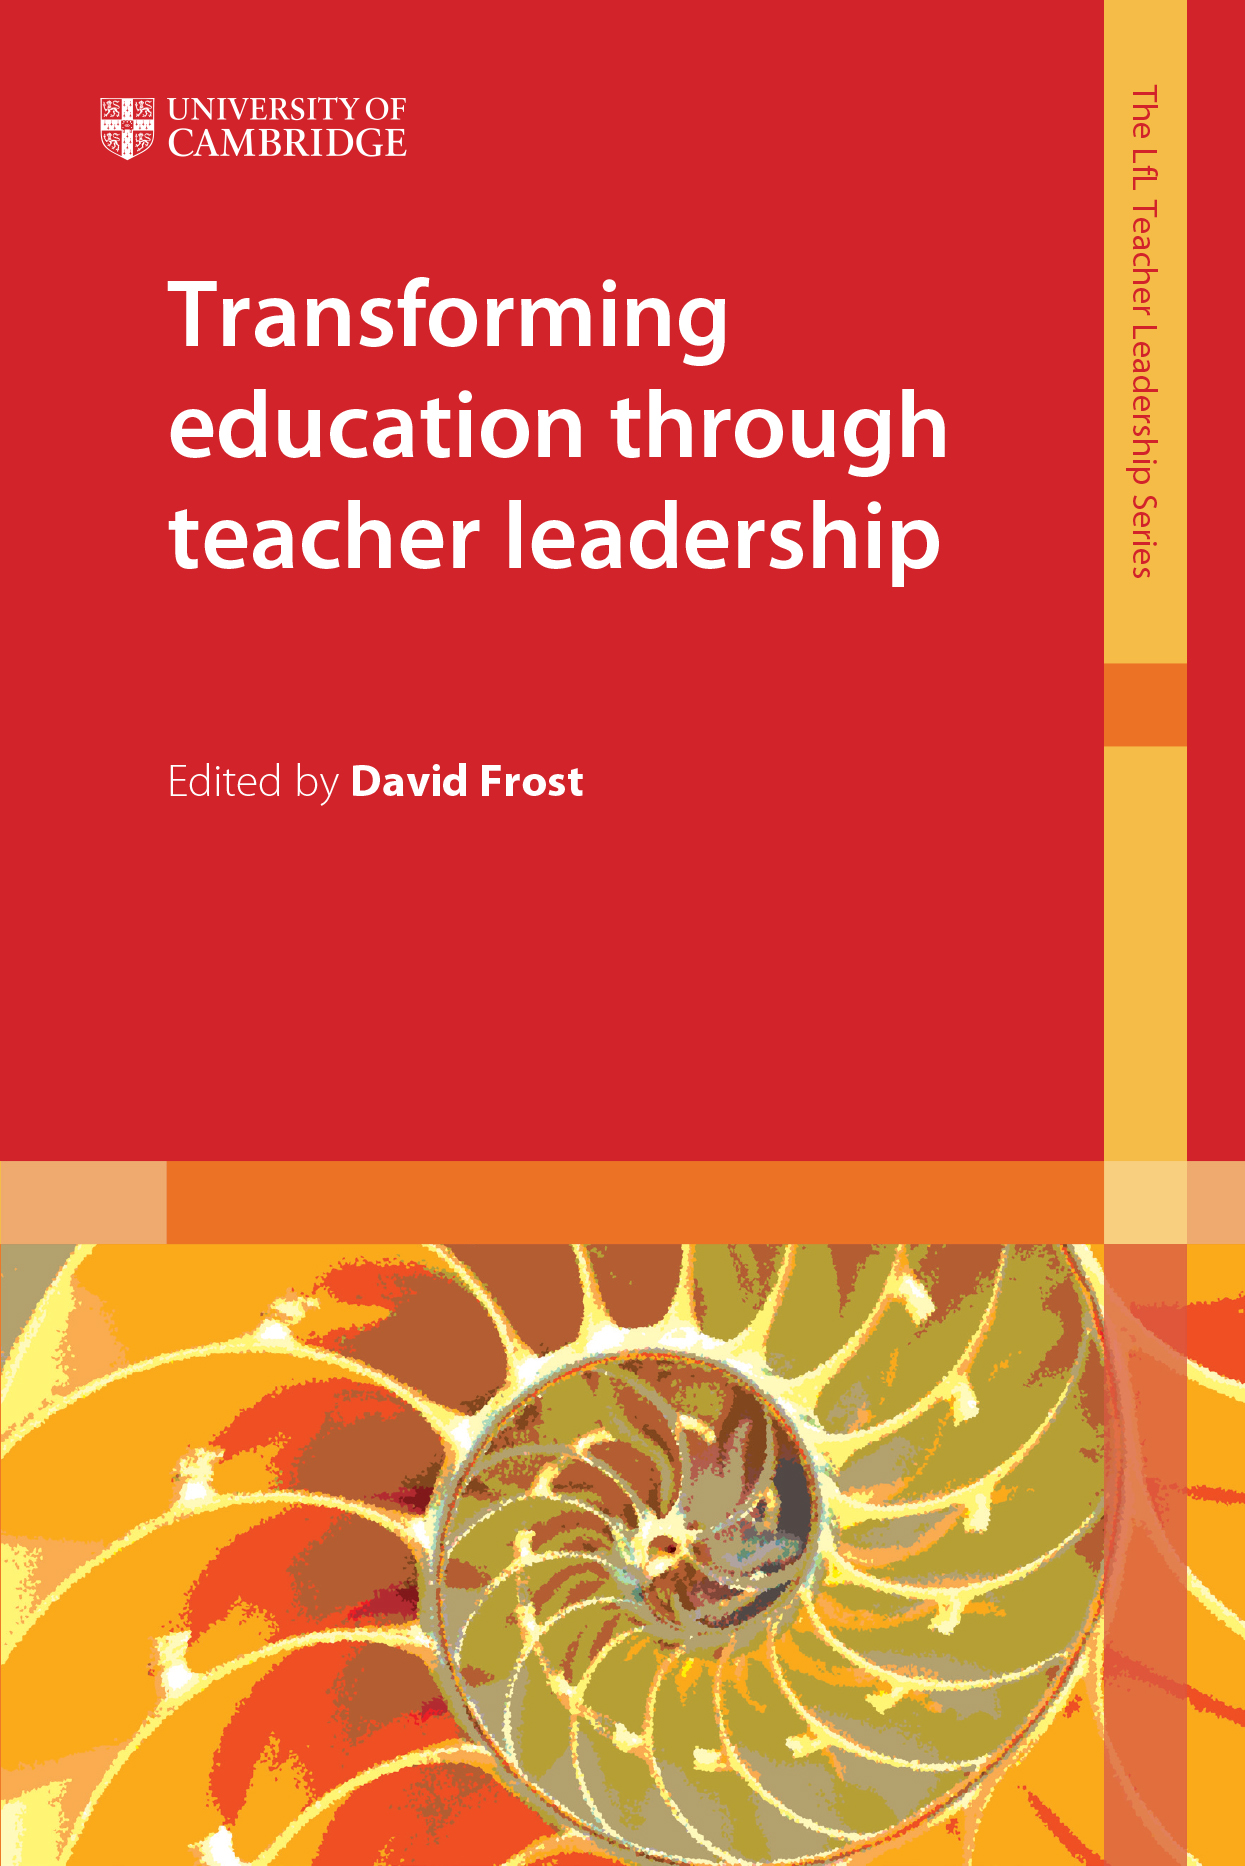 Transforming education through teacher leadership